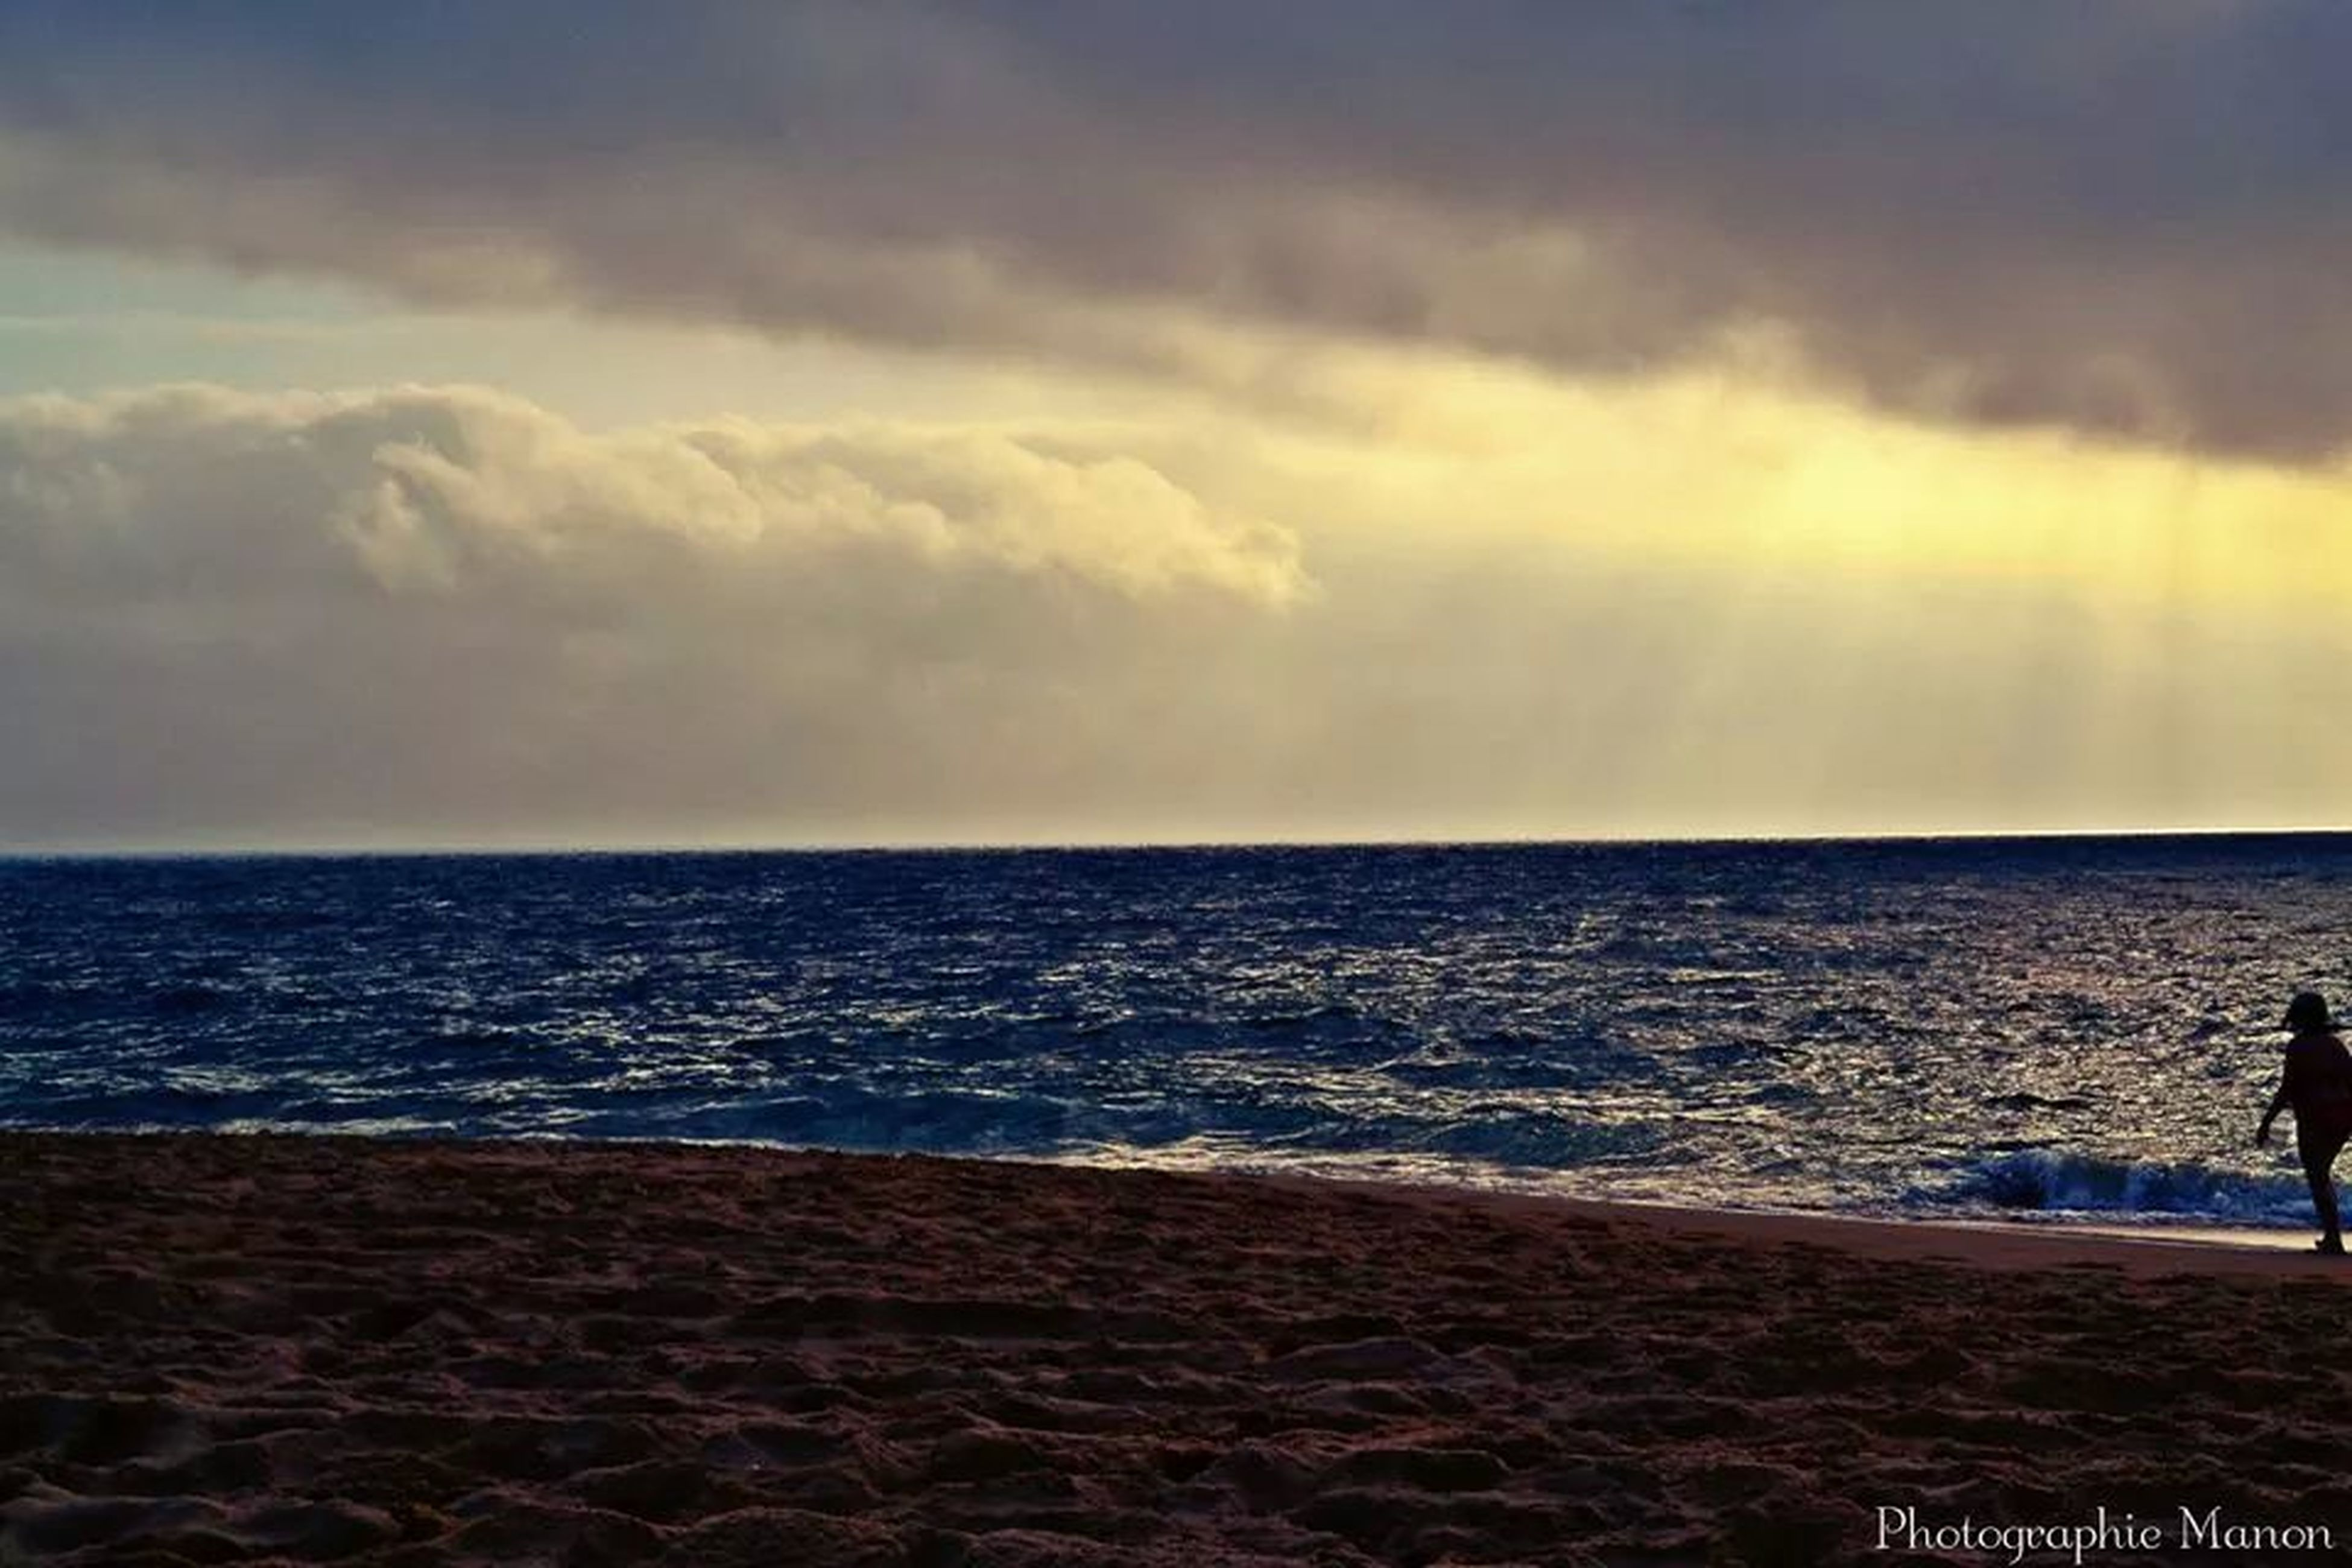 sea, horizon over water, water, sky, scenics, tranquil scene, beauty in nature, beach, tranquility, cloud - sky, shore, sunset, nature, idyllic, wave, cloudy, cloud, seascape, remote, outdoors